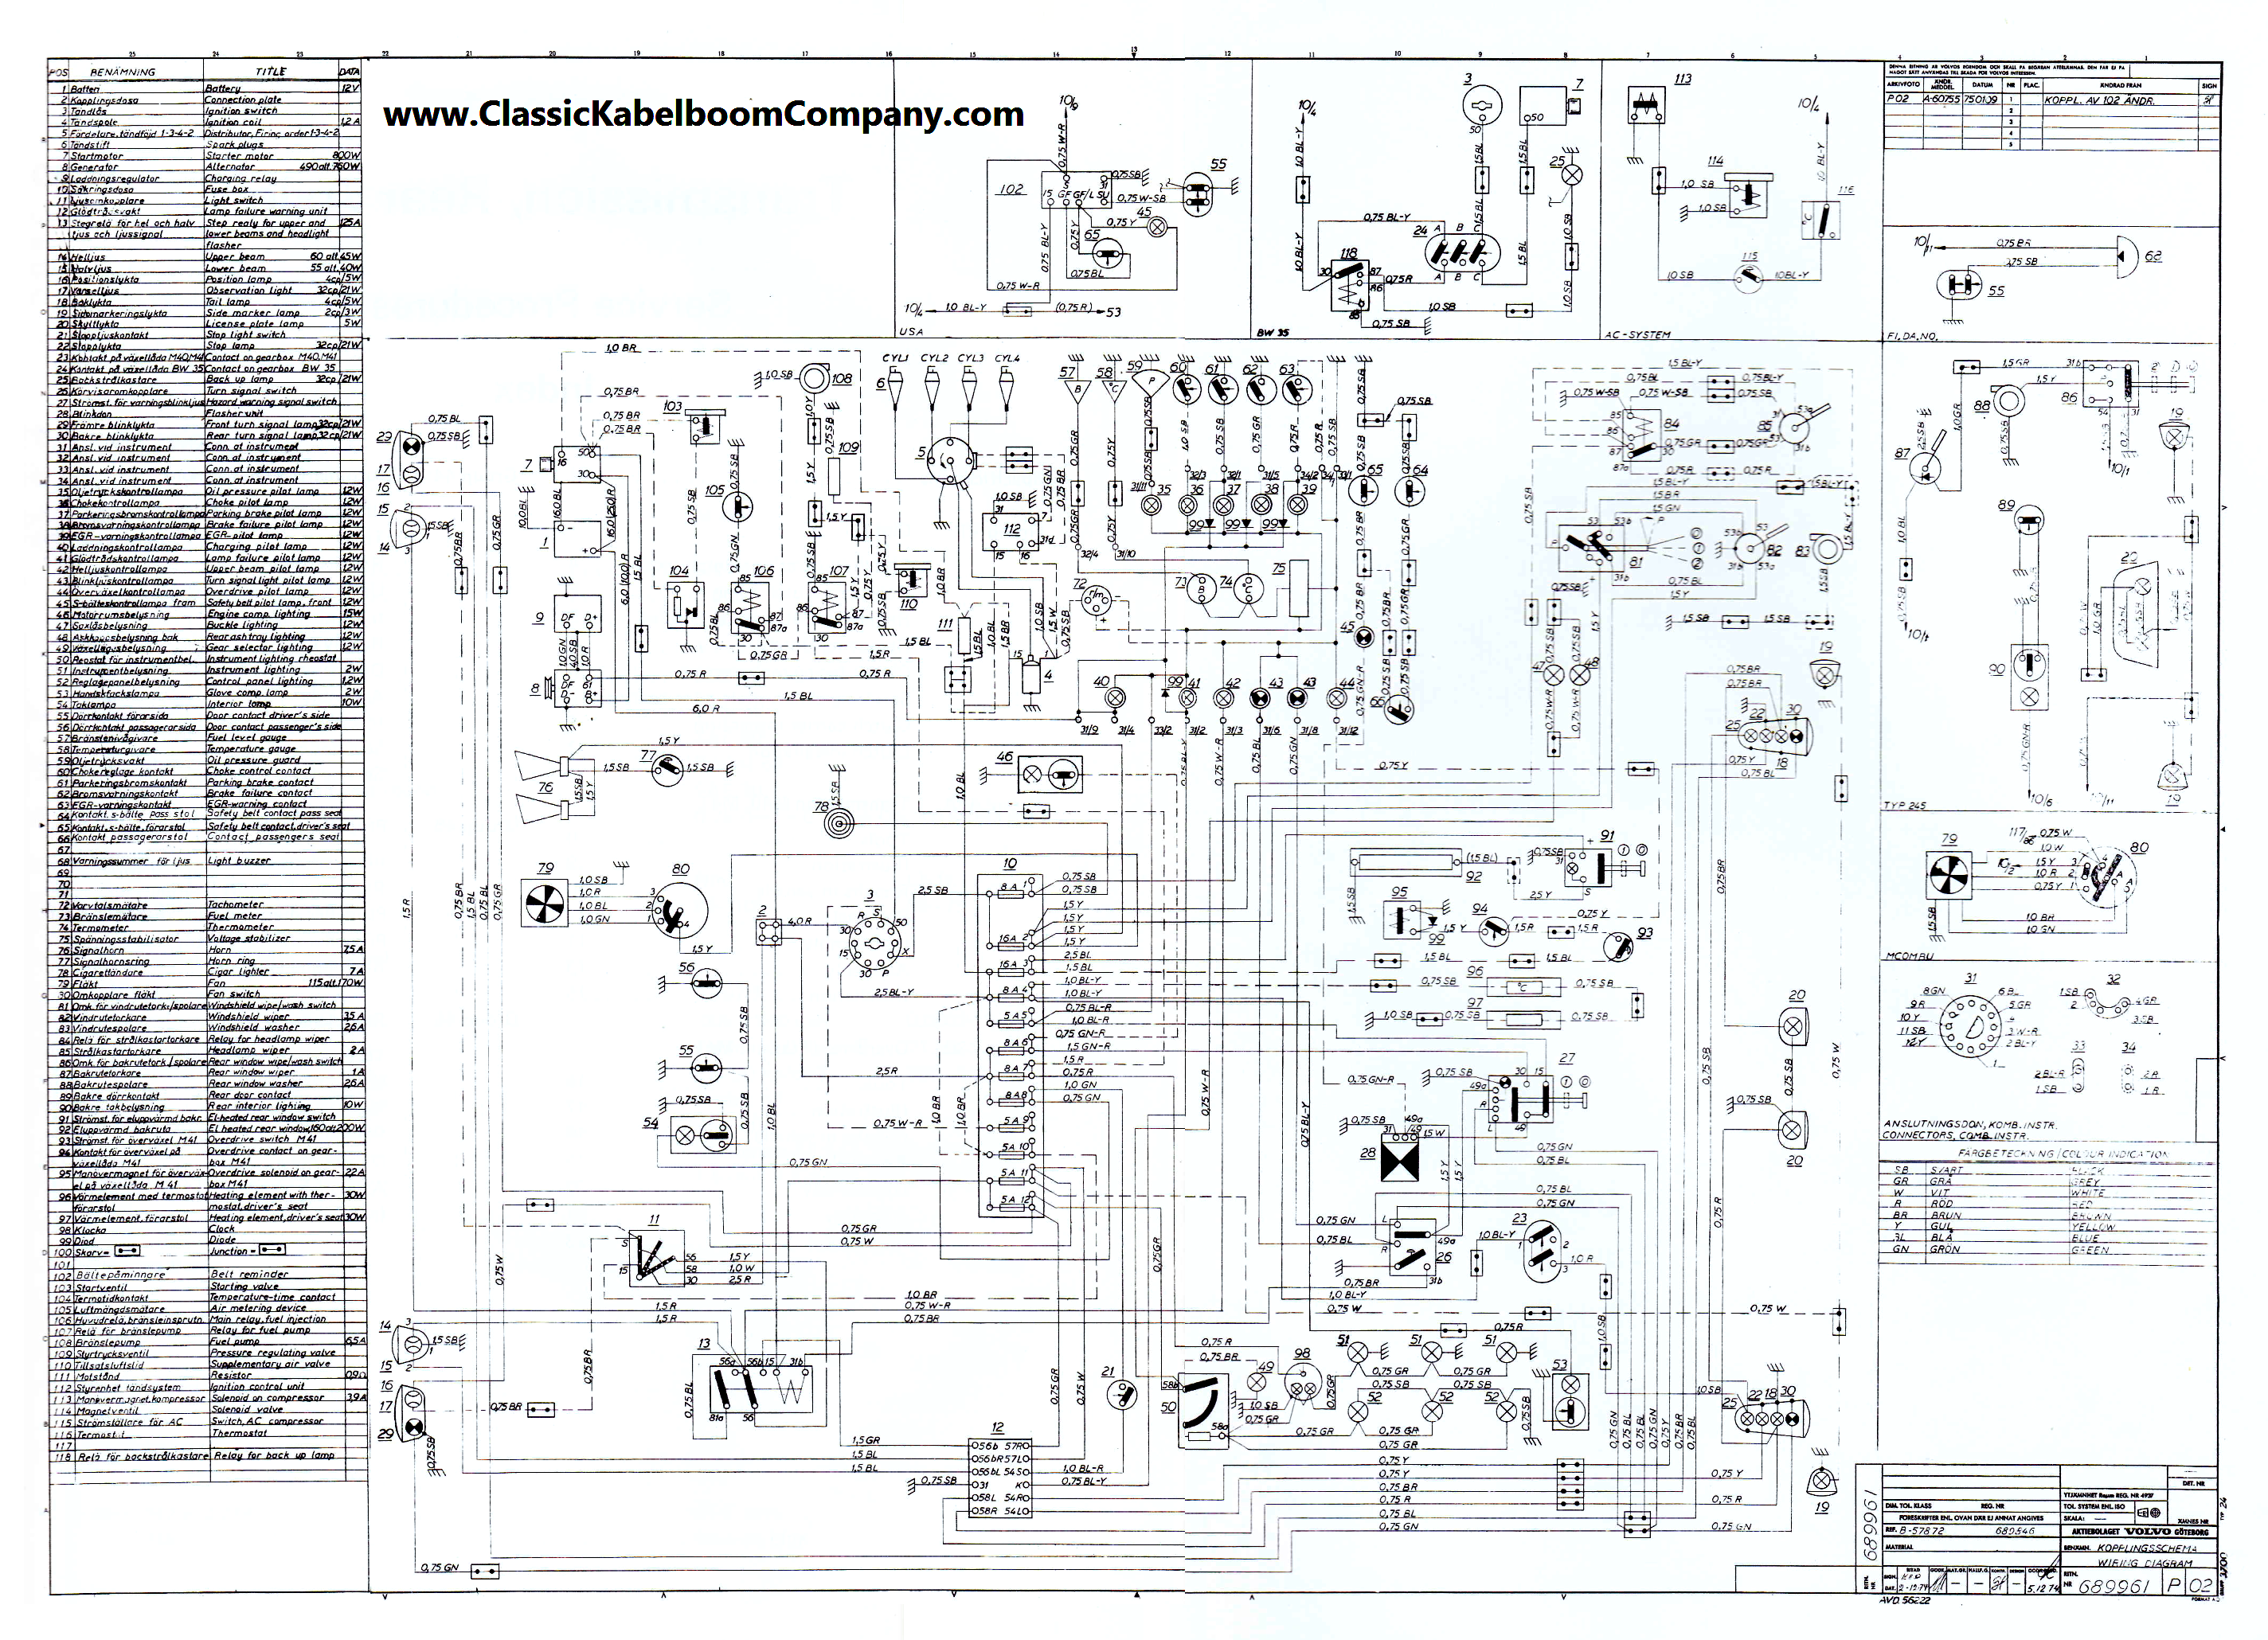 vol40?cdp=a classic kabelboom company elektrisch bedrading schema volvo volvo amazon wiring diagram at edmiracle.co